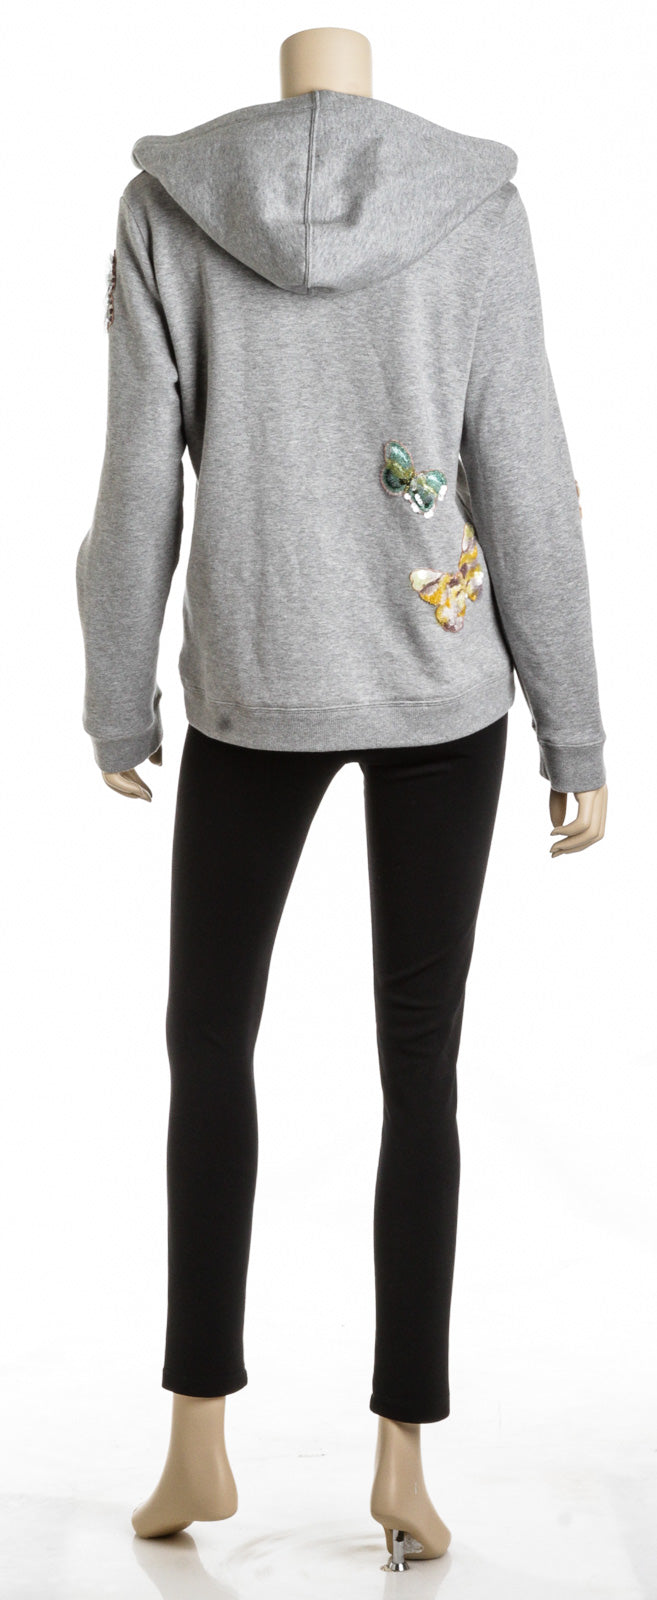 Valentino Gray Cotton Butterfly Applique Sequin Hoodie (Size M)